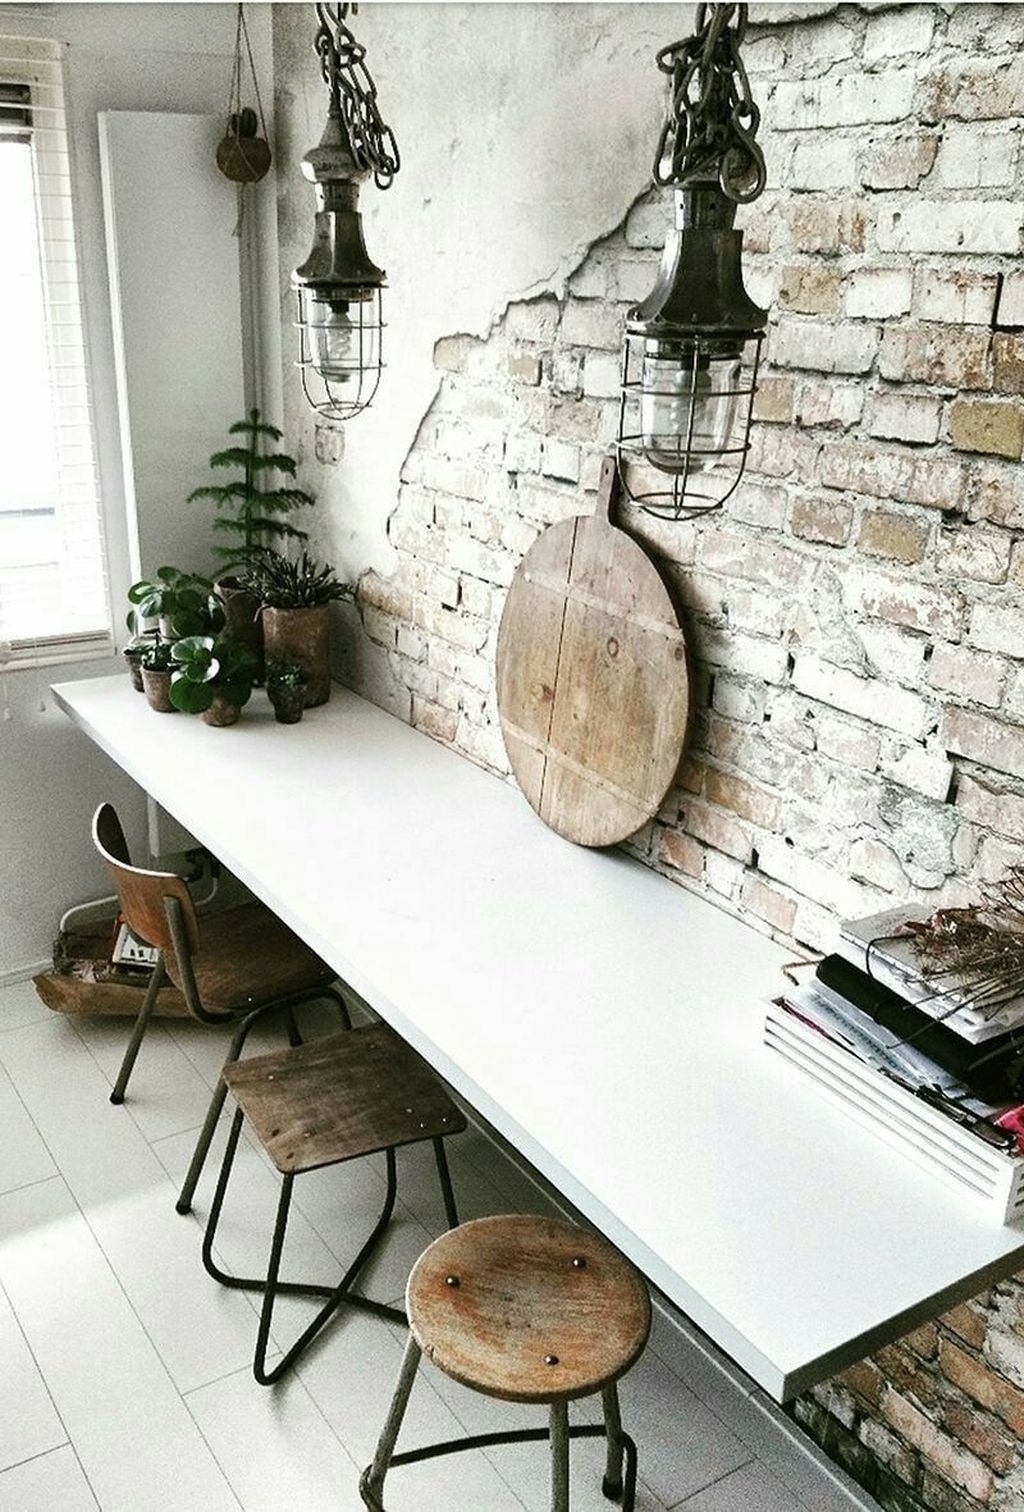 45 Outstanding Home Industrial Concept Design Ideas With Brick Wall To Try 45 Outstanding Home Industrial Concept Design Ideas With Brick Wall To Try  Industrial interior